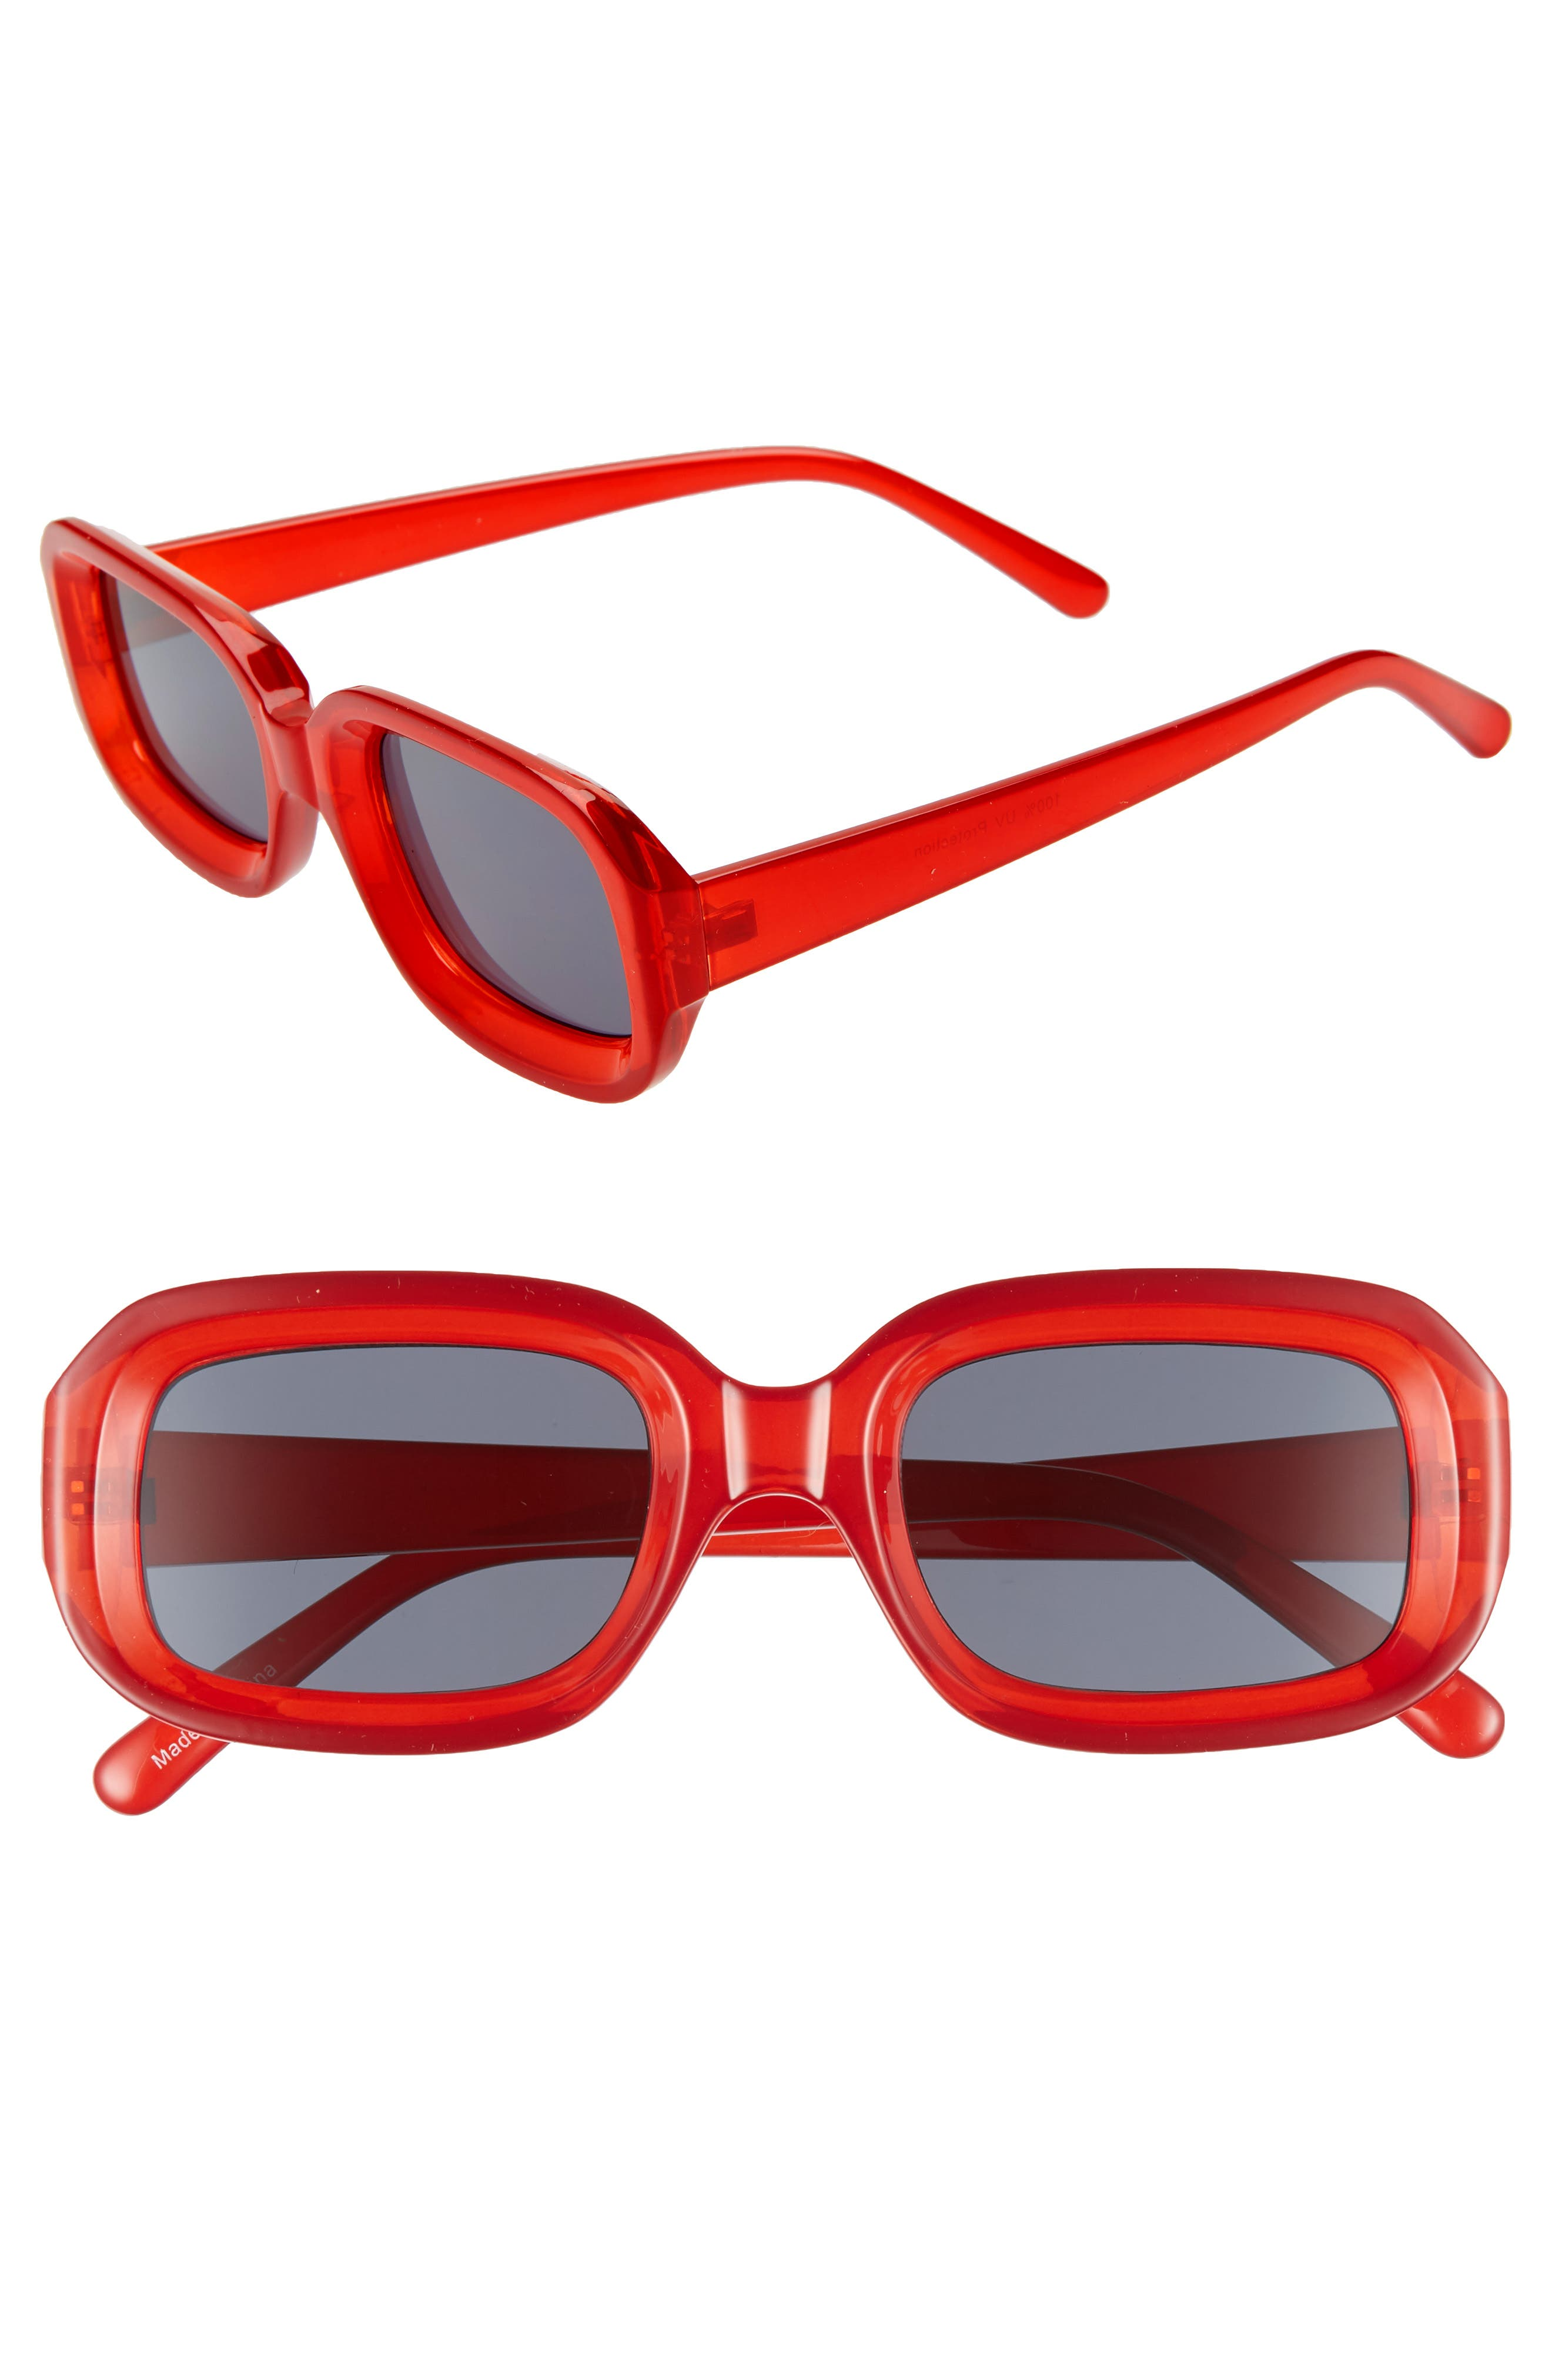 66mm Inset Square Sunglasses,                             Main thumbnail 1, color,                             RED/ BLACK